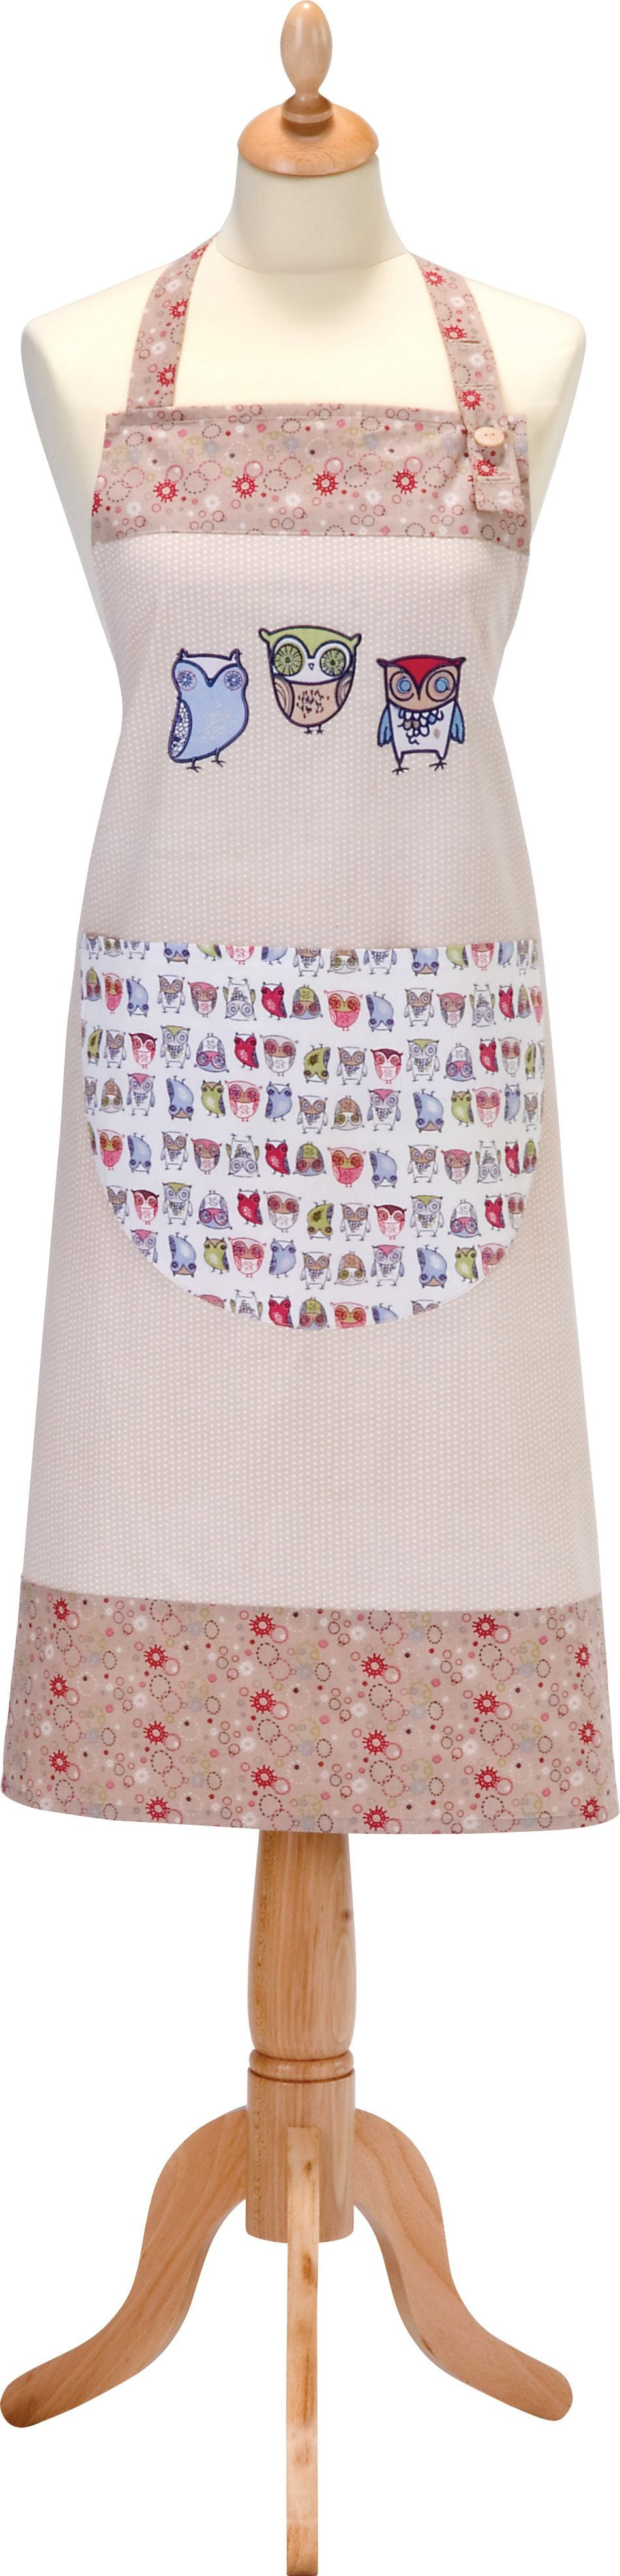 TWITTER STYLED COTTON APRON